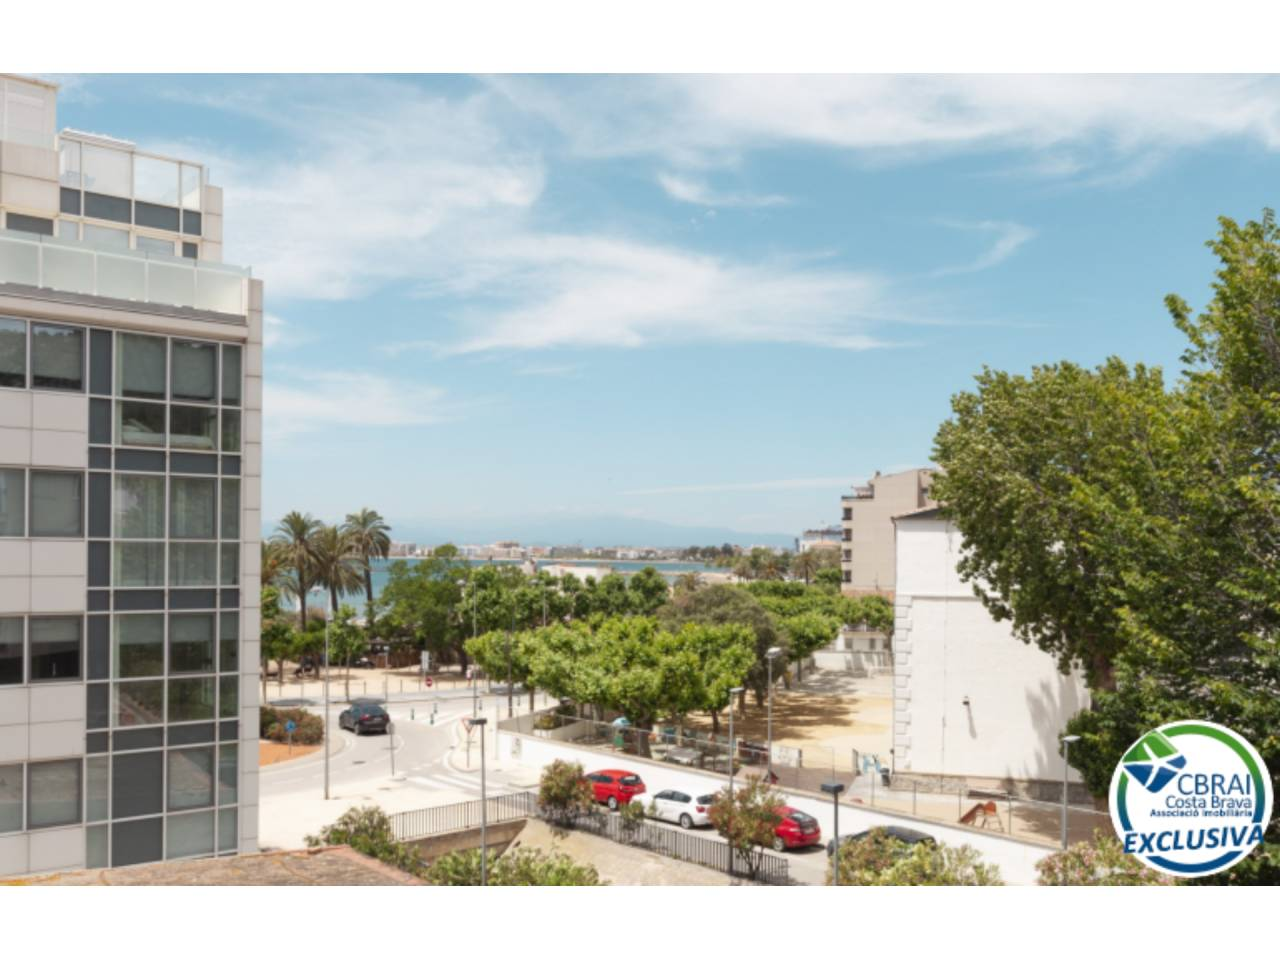 003006 - DRASSANES Apartment for sale in Roses with sea views